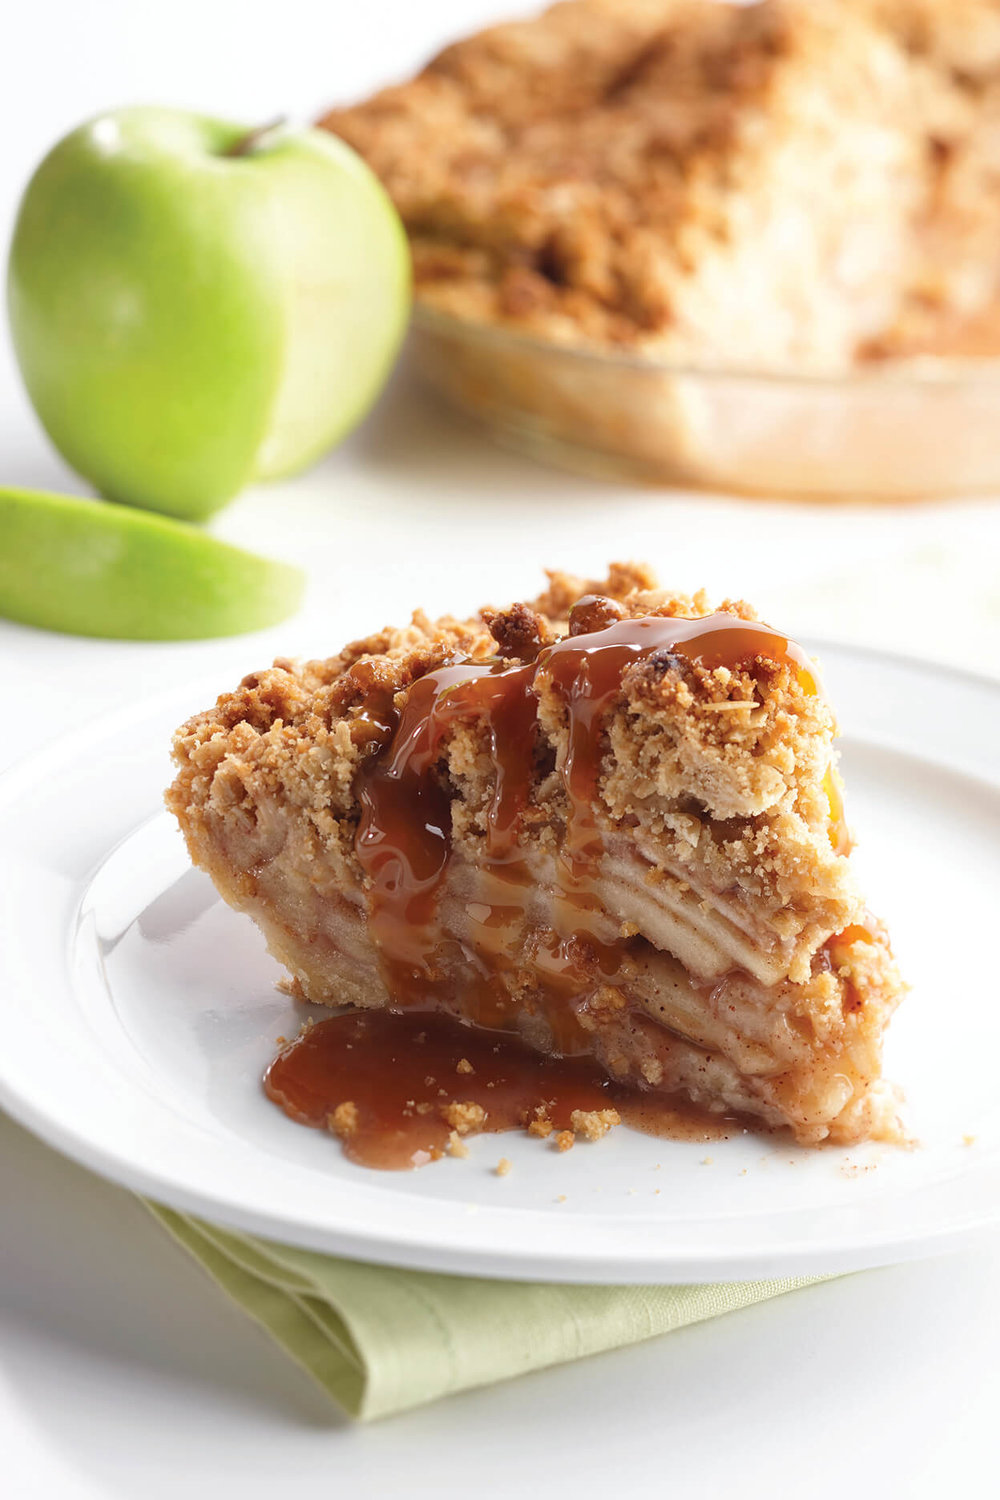 Four-Minute Caramel Apple Pie